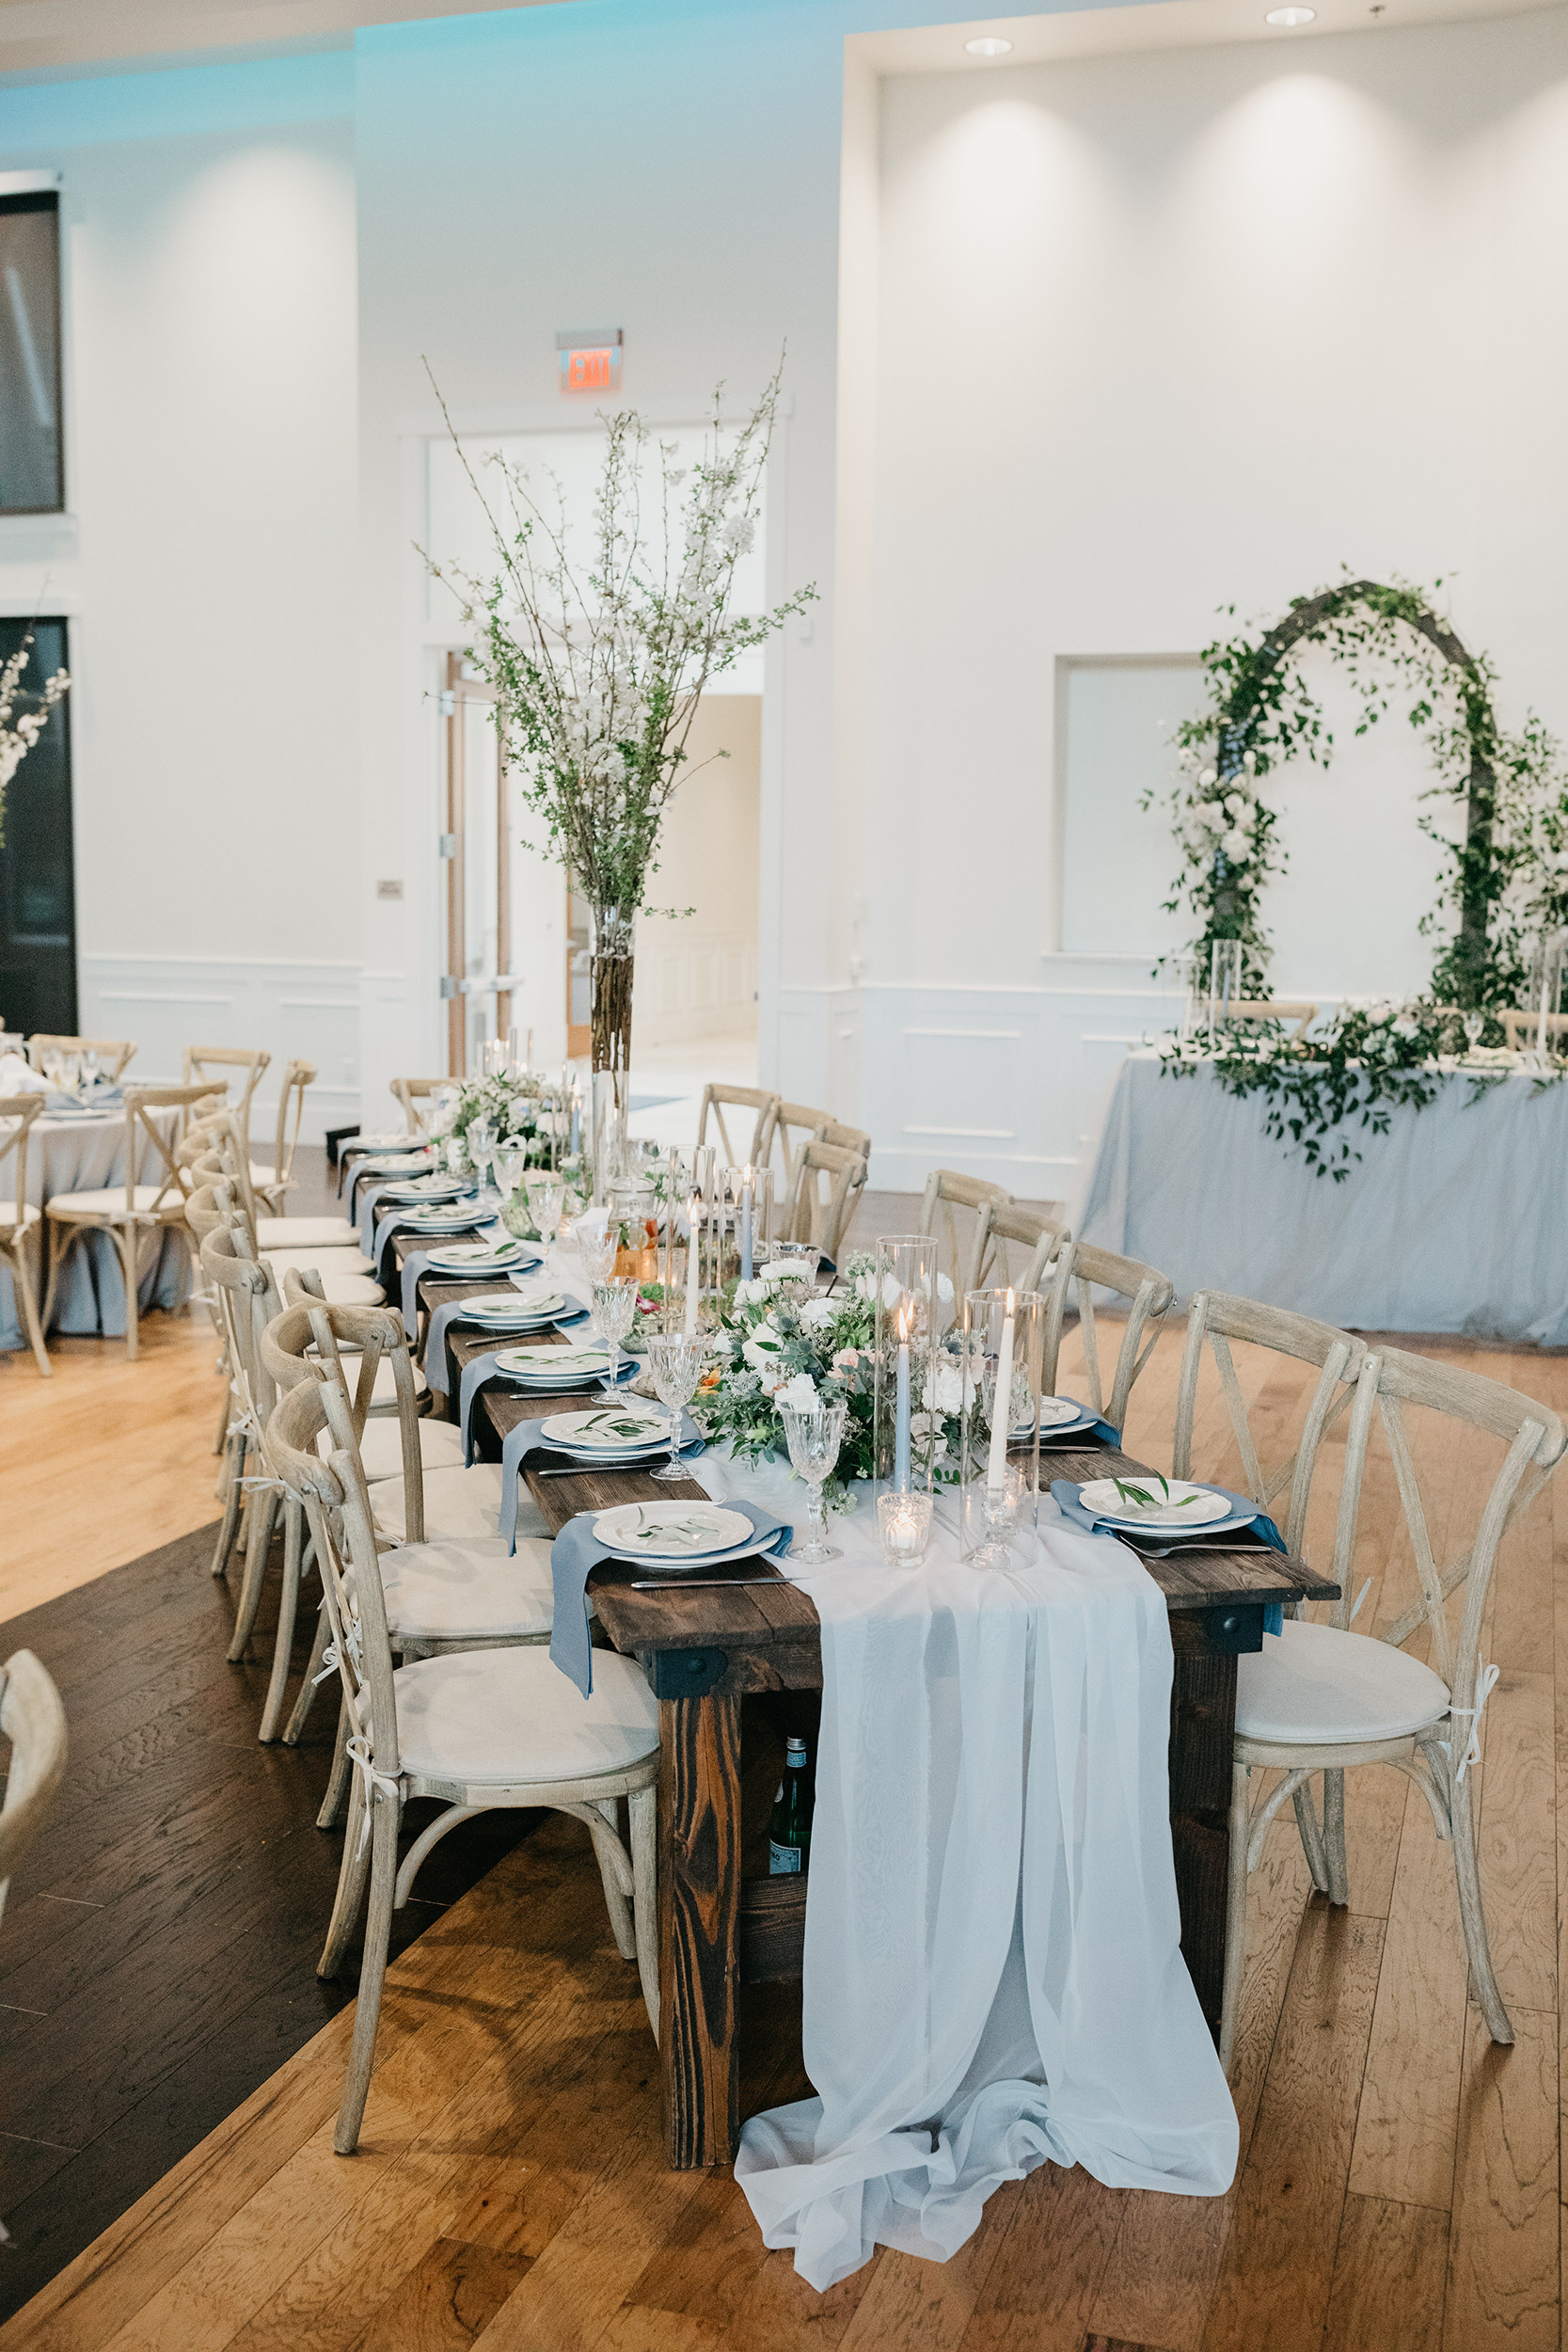 Violette-fleurs-event-design-roseville-Nelli-noel-photography-the-falls-event-center-Curated-Beautiful-Decor-branches-reception.jpg